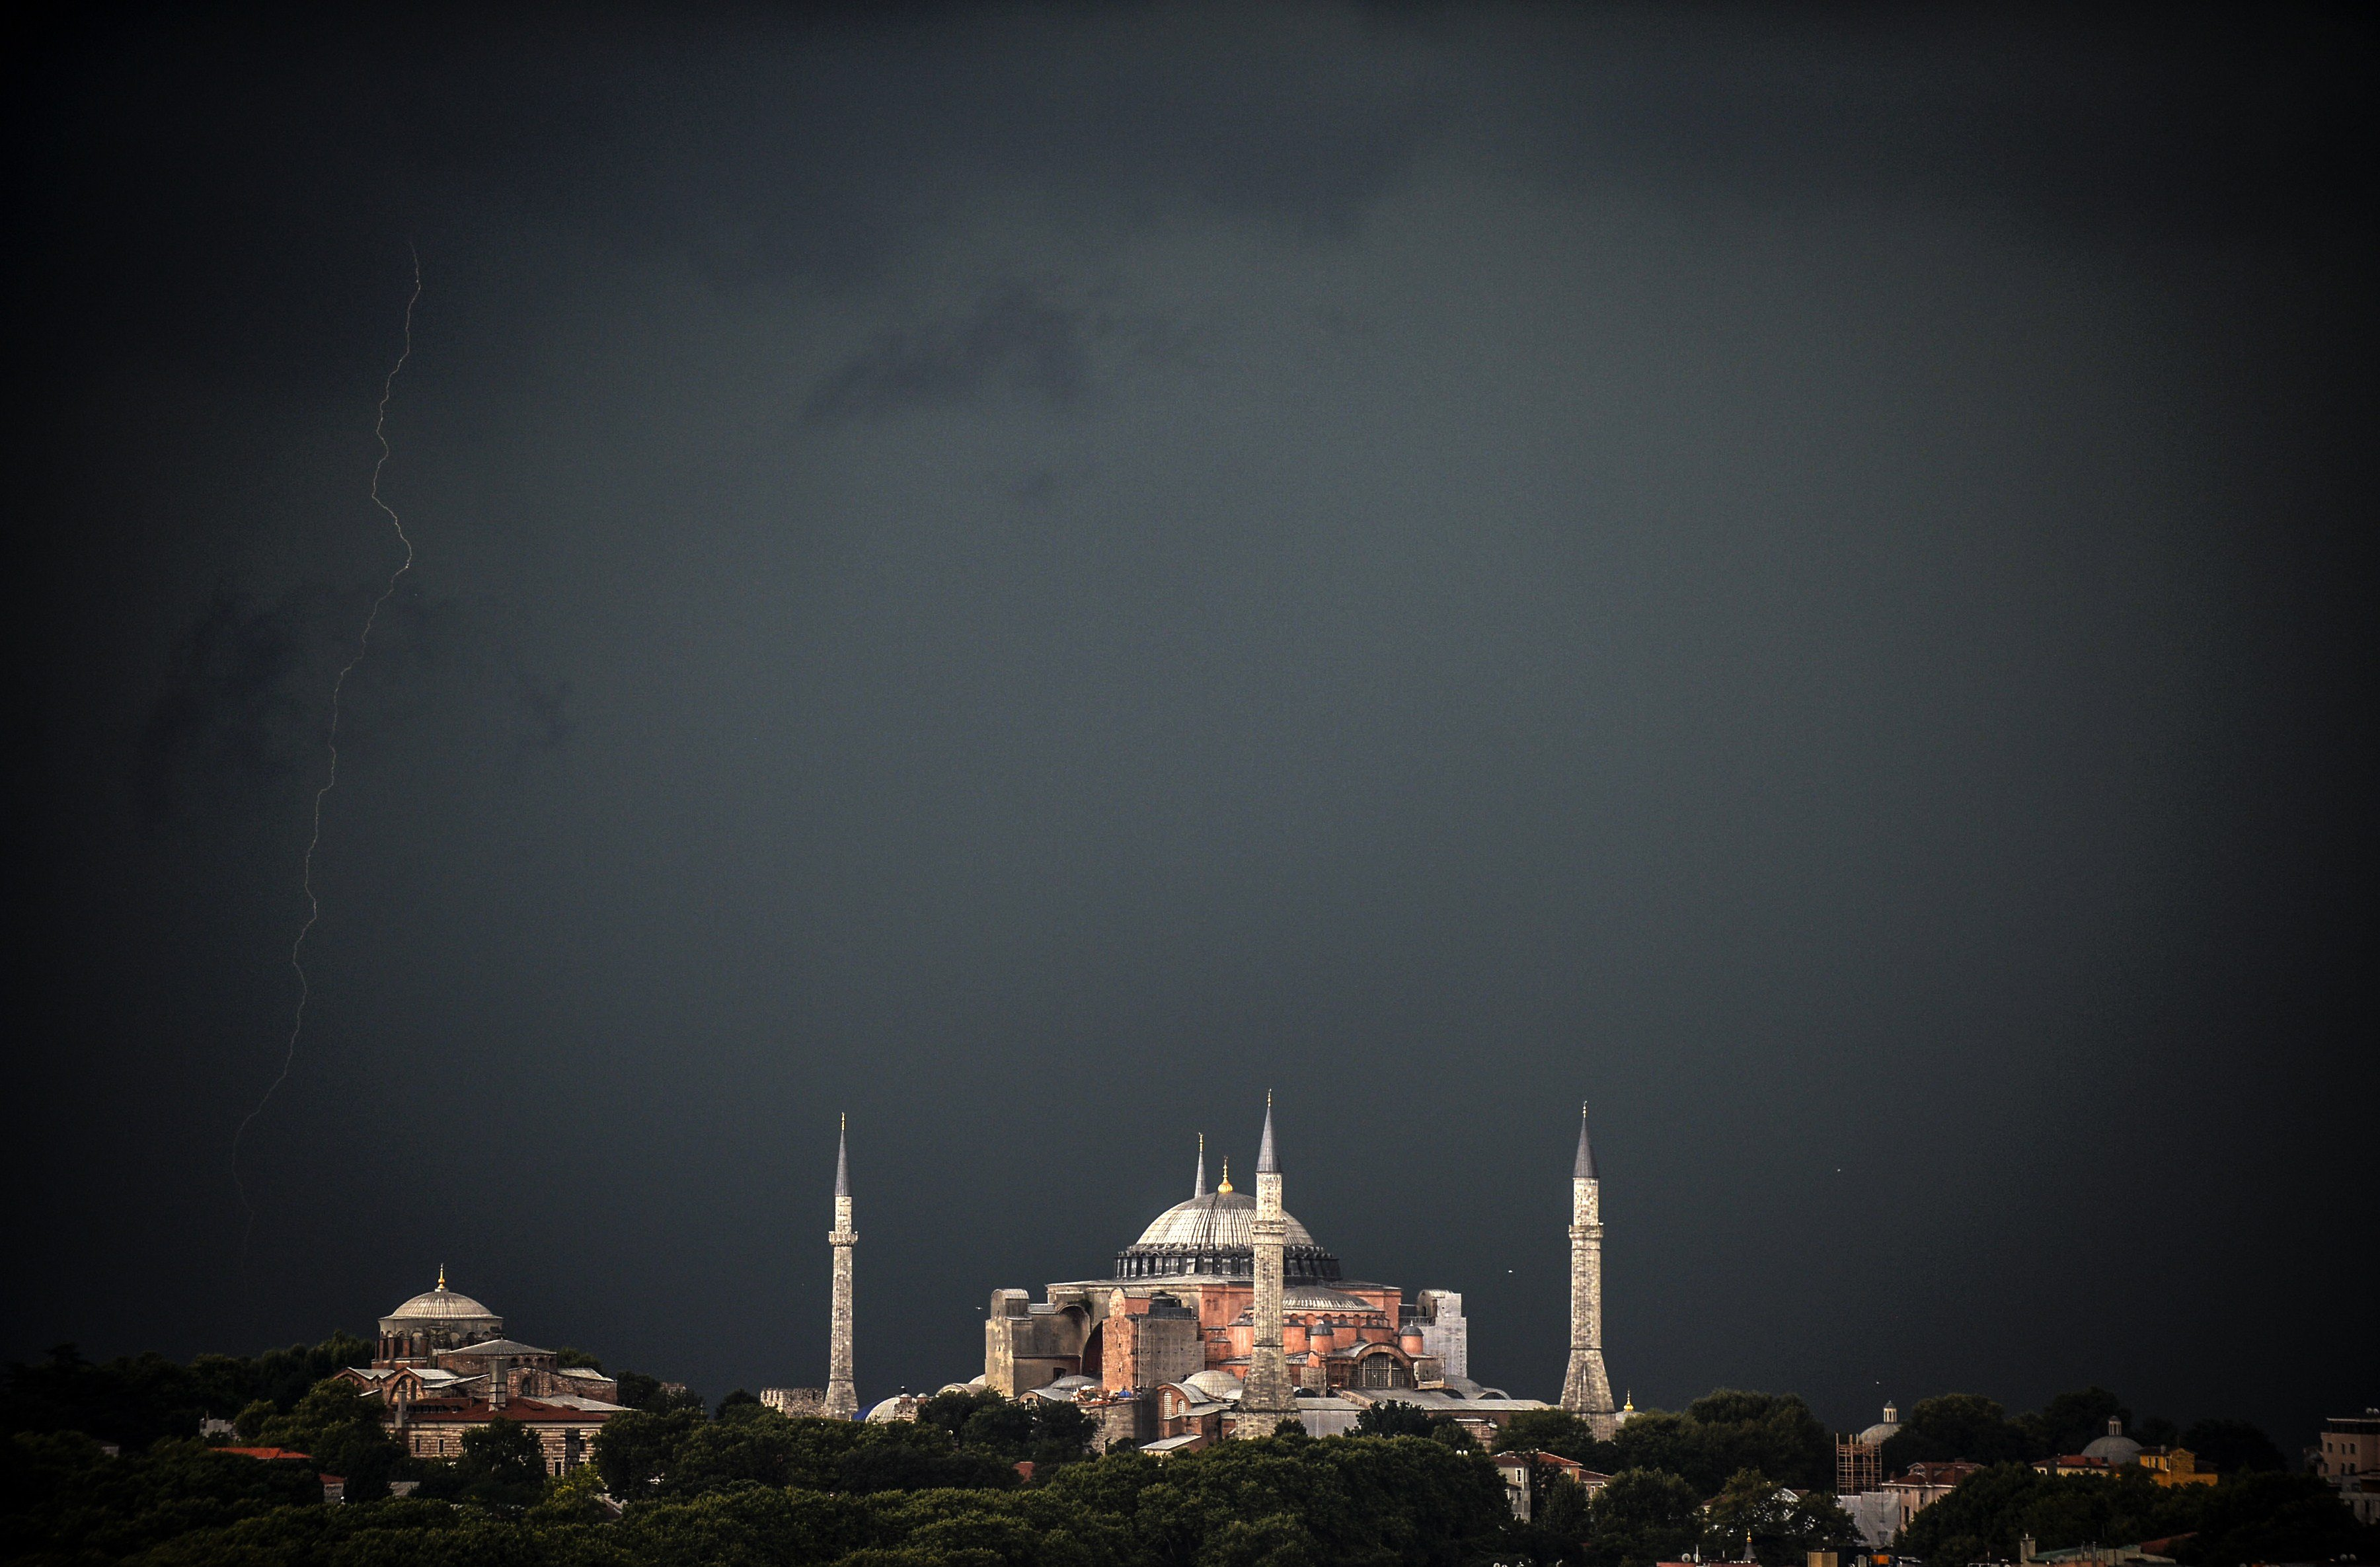 Aug. 7, 2014. Clouds gather over the Hagia Sophia museum during a storm in Istanbul as ligntning plays across the sky.